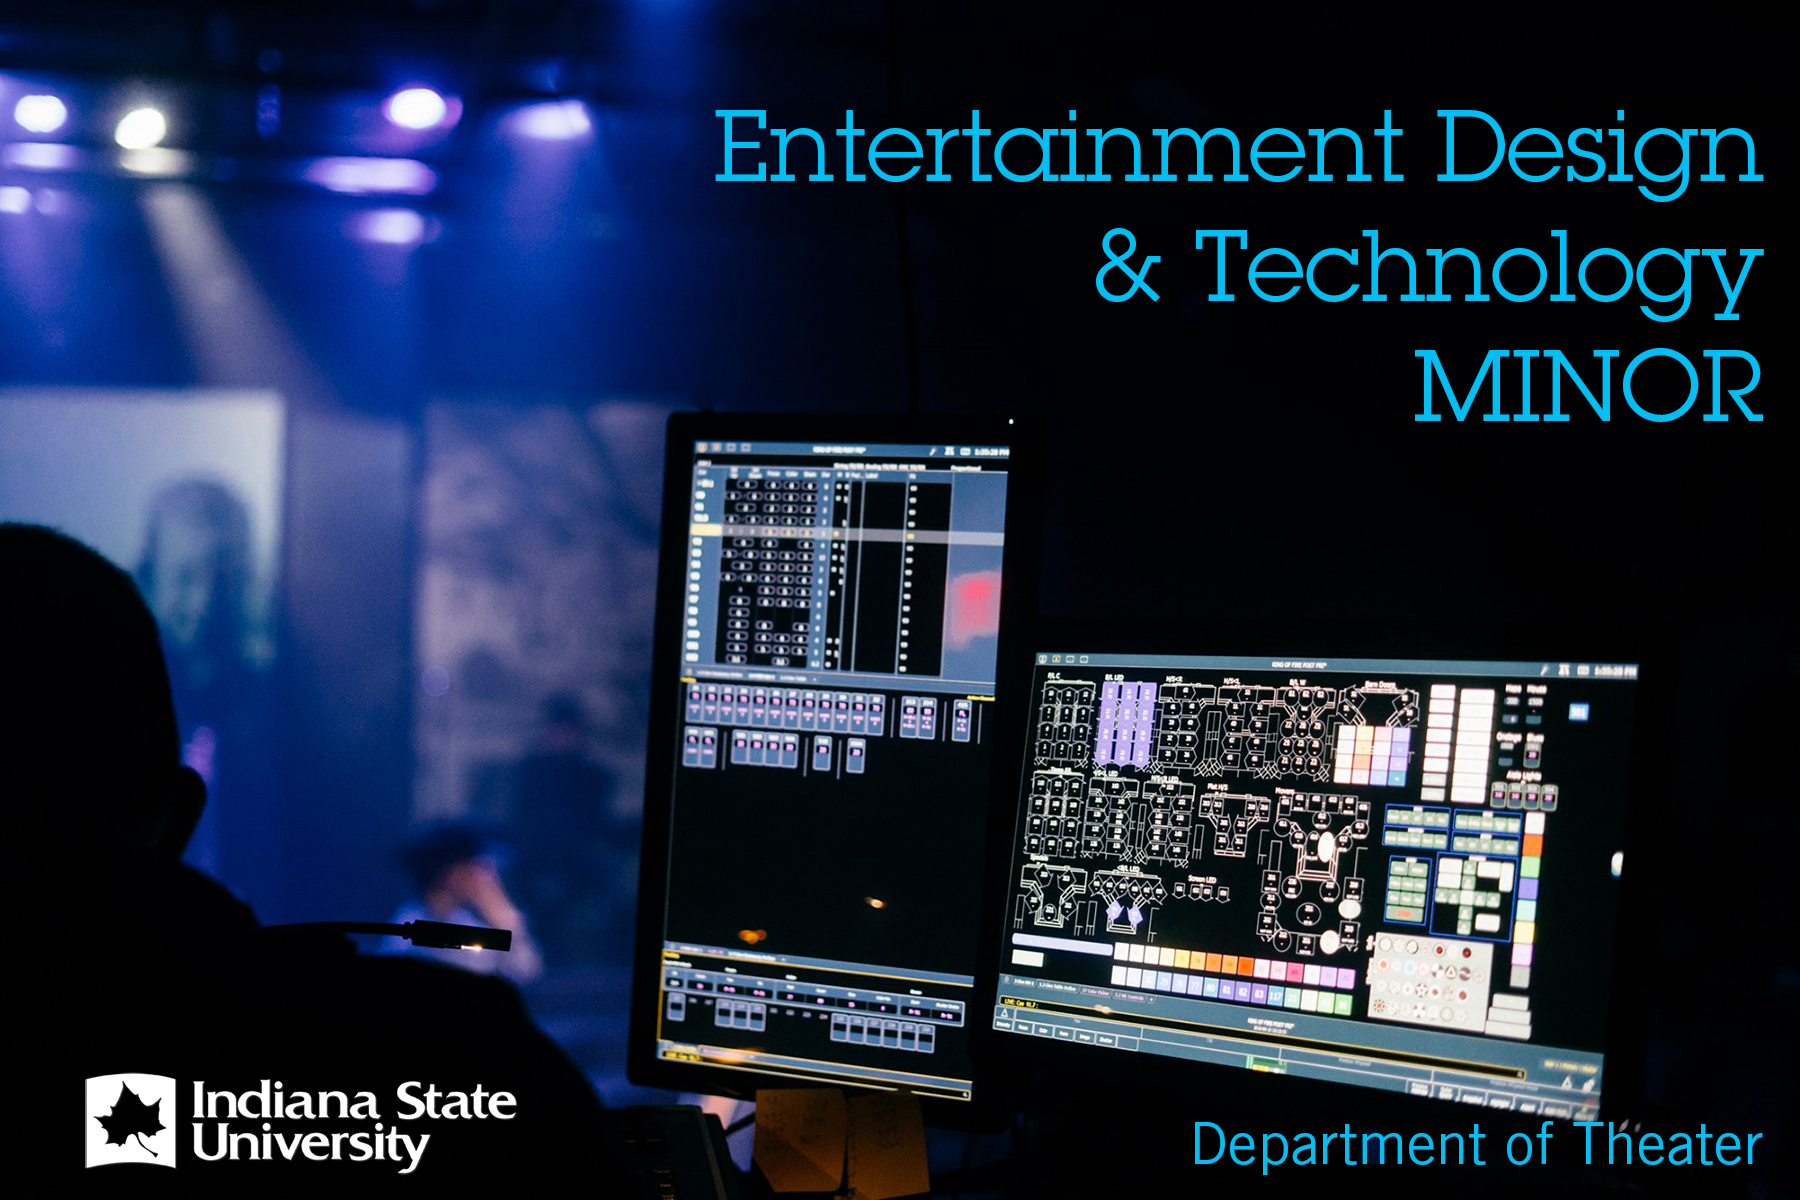 Entertainment Design and Technology